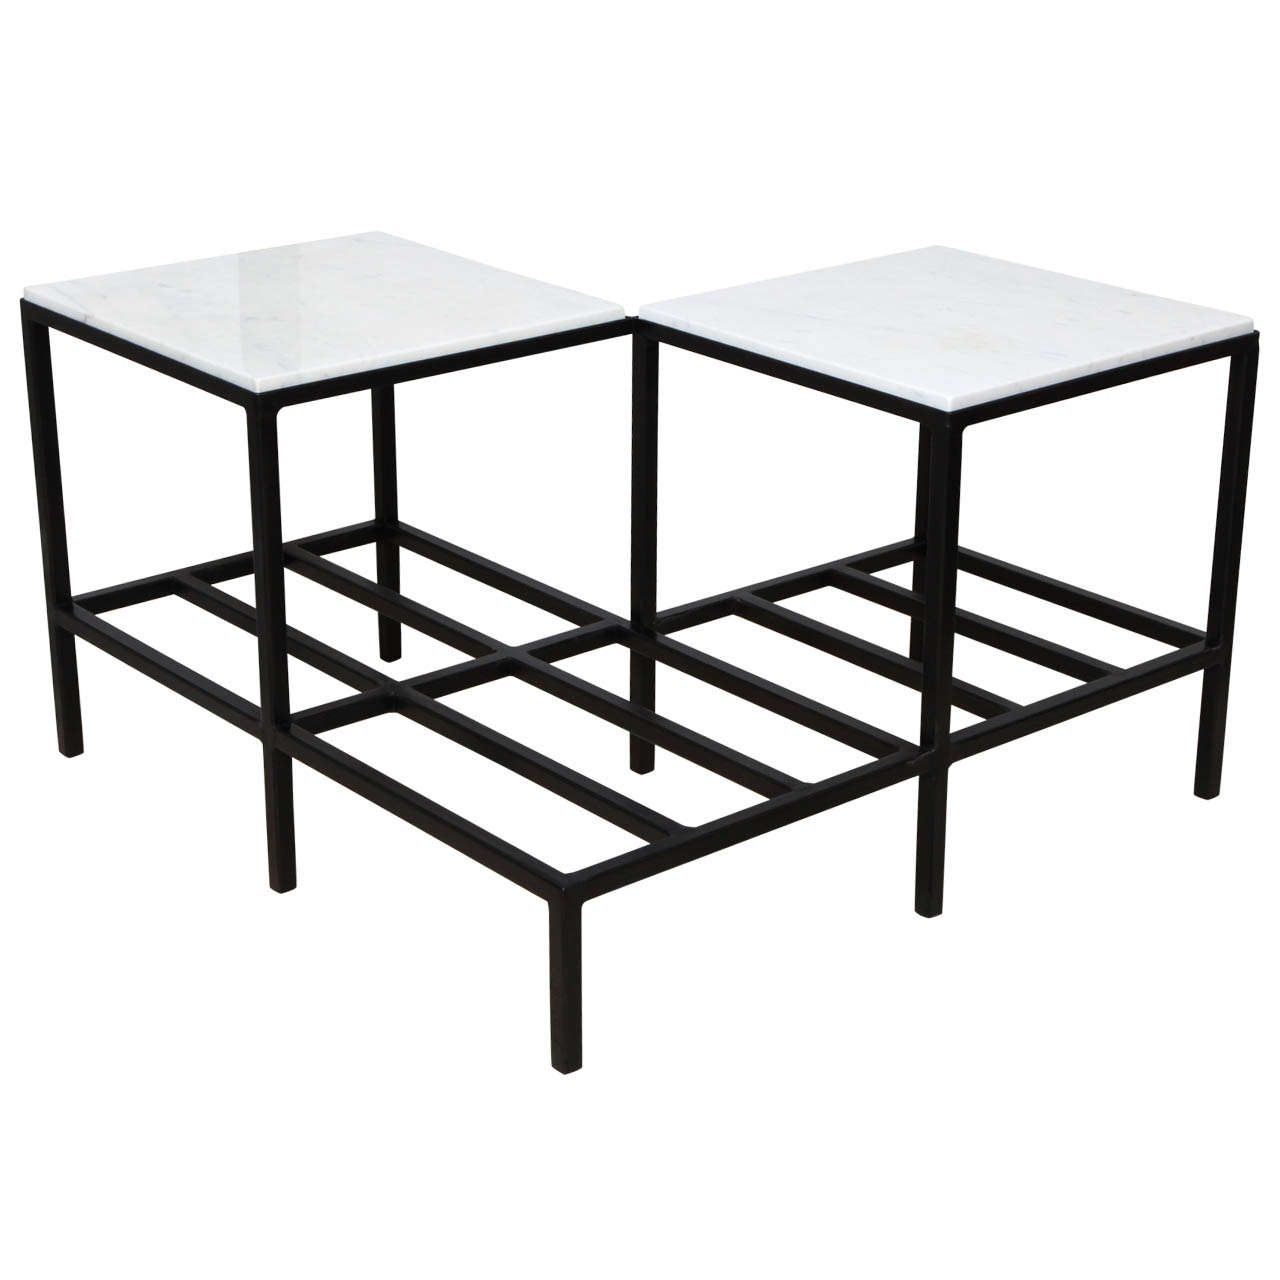 Mid Century Square Steel Coffee Table With Black Marble: Mid-Century 2 Tier Iron Cocktail Table With White Marble